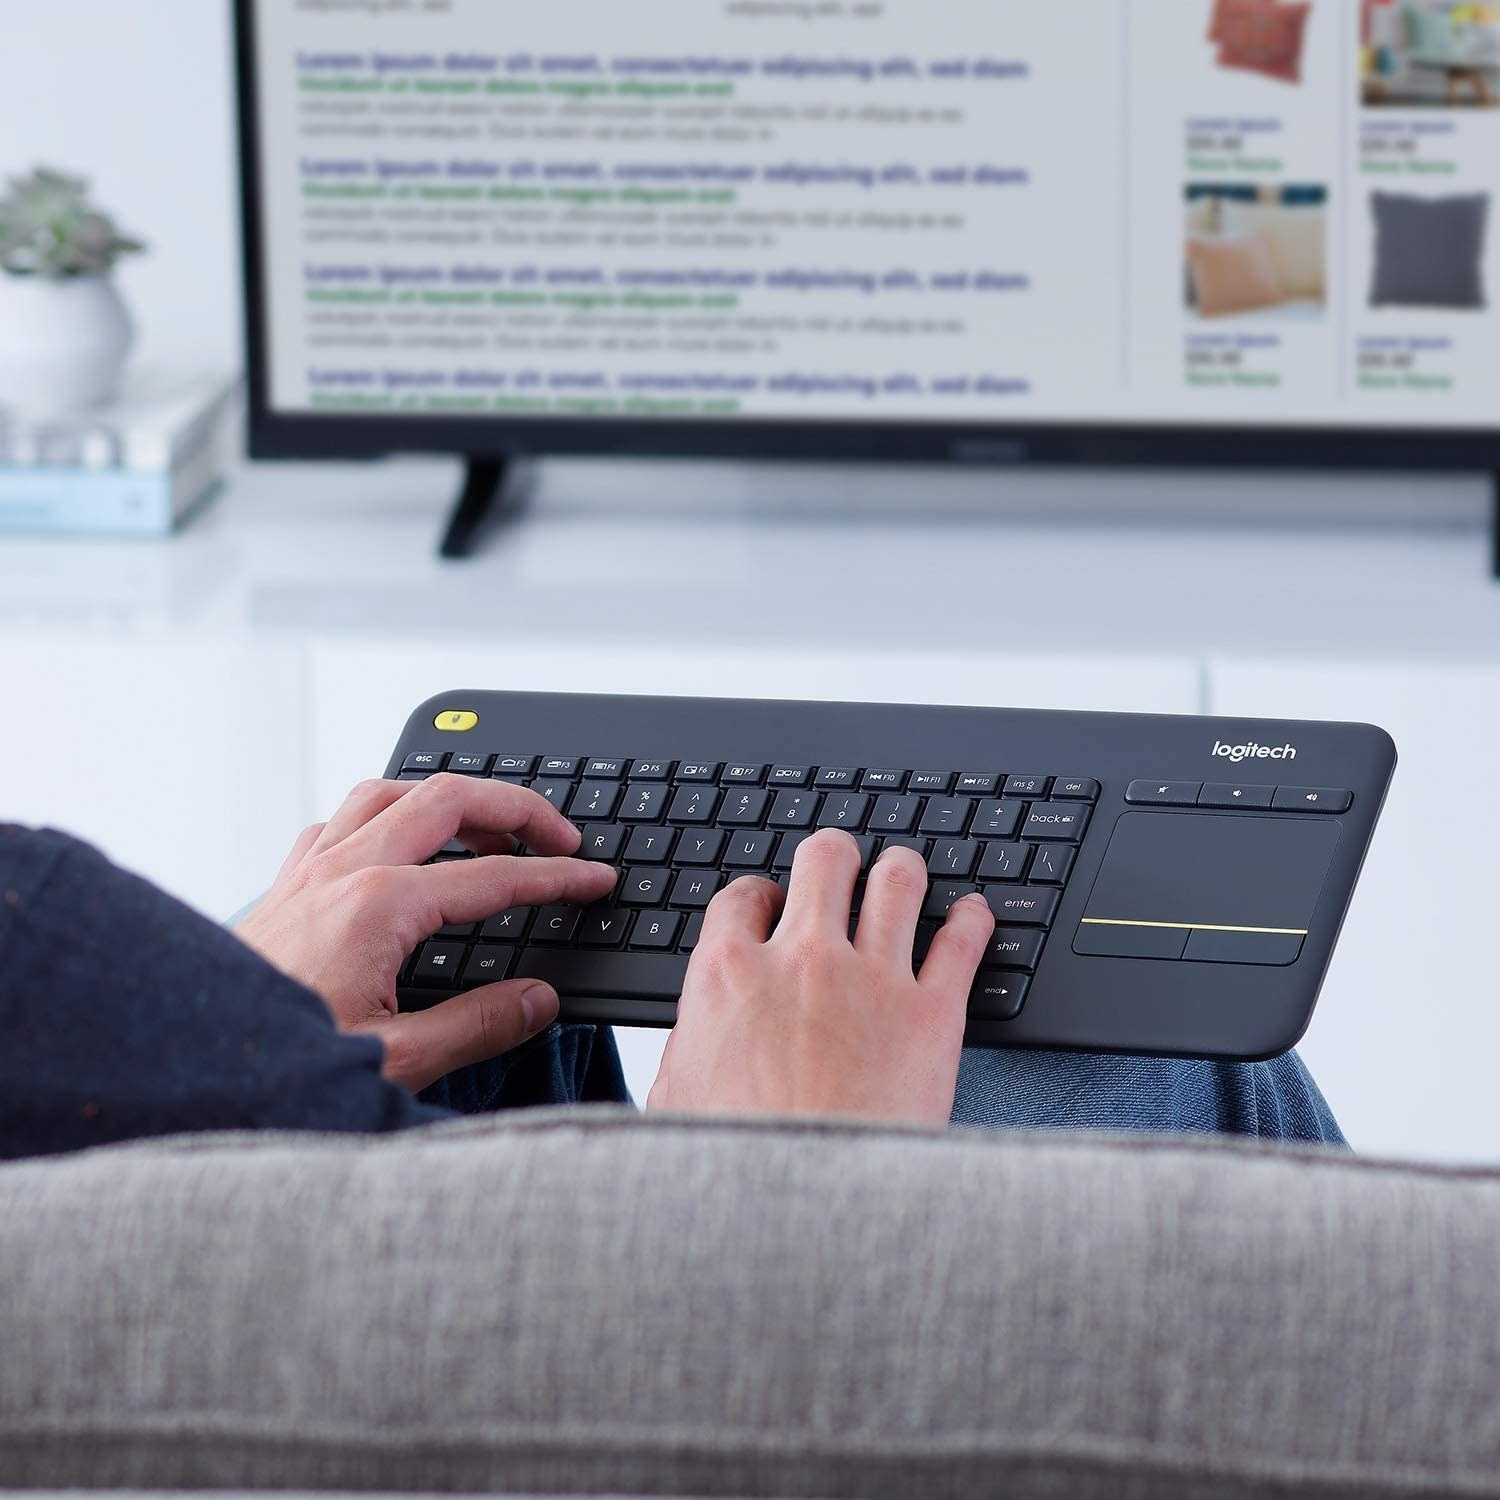 A person typing on the keyboard in front of their TV